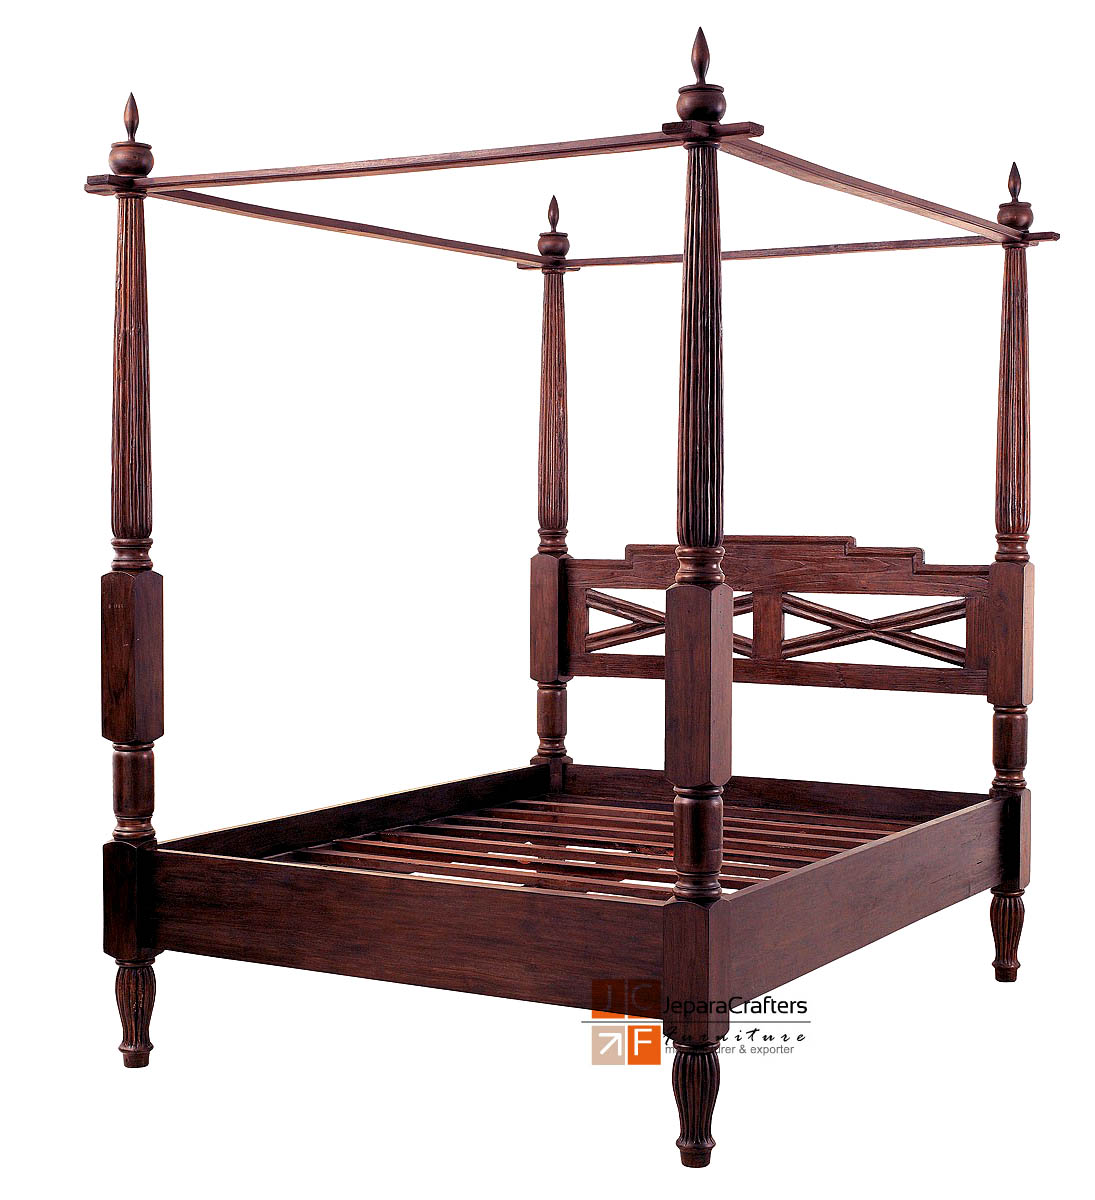 - Bali Antique Canopy Beds Frame Solid Teak Wood Colonial Furniture